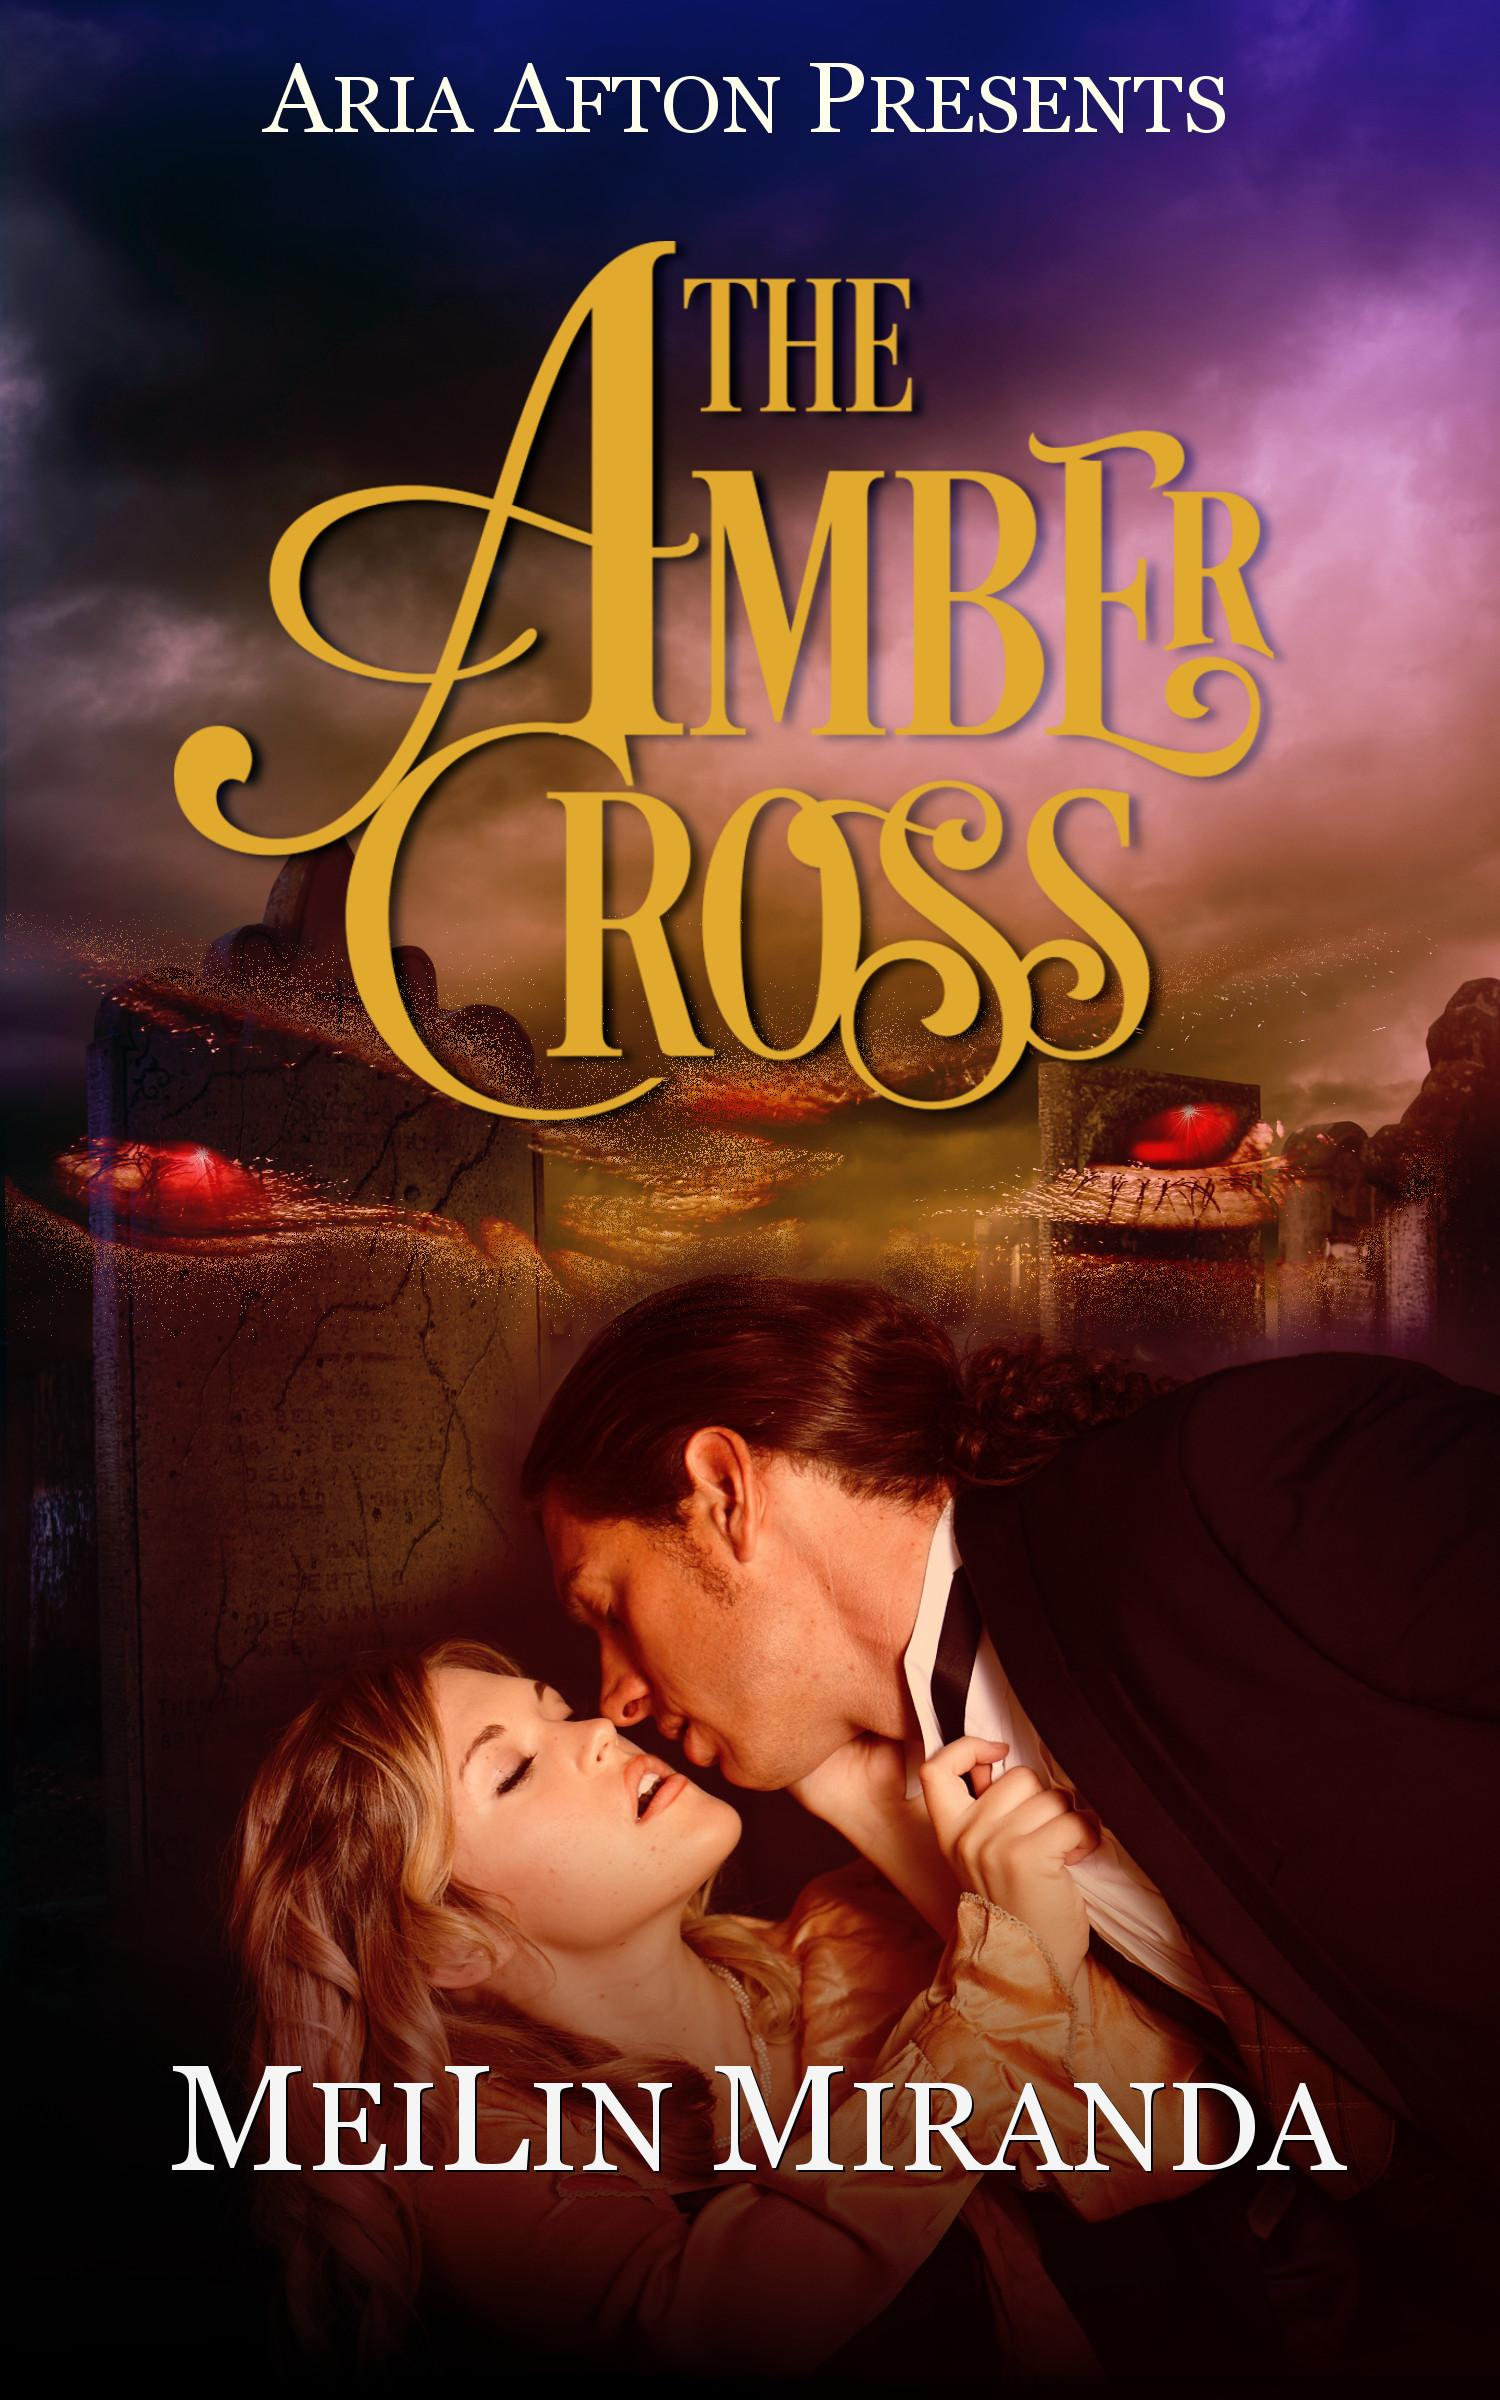 Aria afton presents erotic romance meilin miranda glamorous siblings henry and mary crawford have captivated the bertrams of mansfield park the one exception is the bertrams shy cousin fanny price fandeluxe Image collections